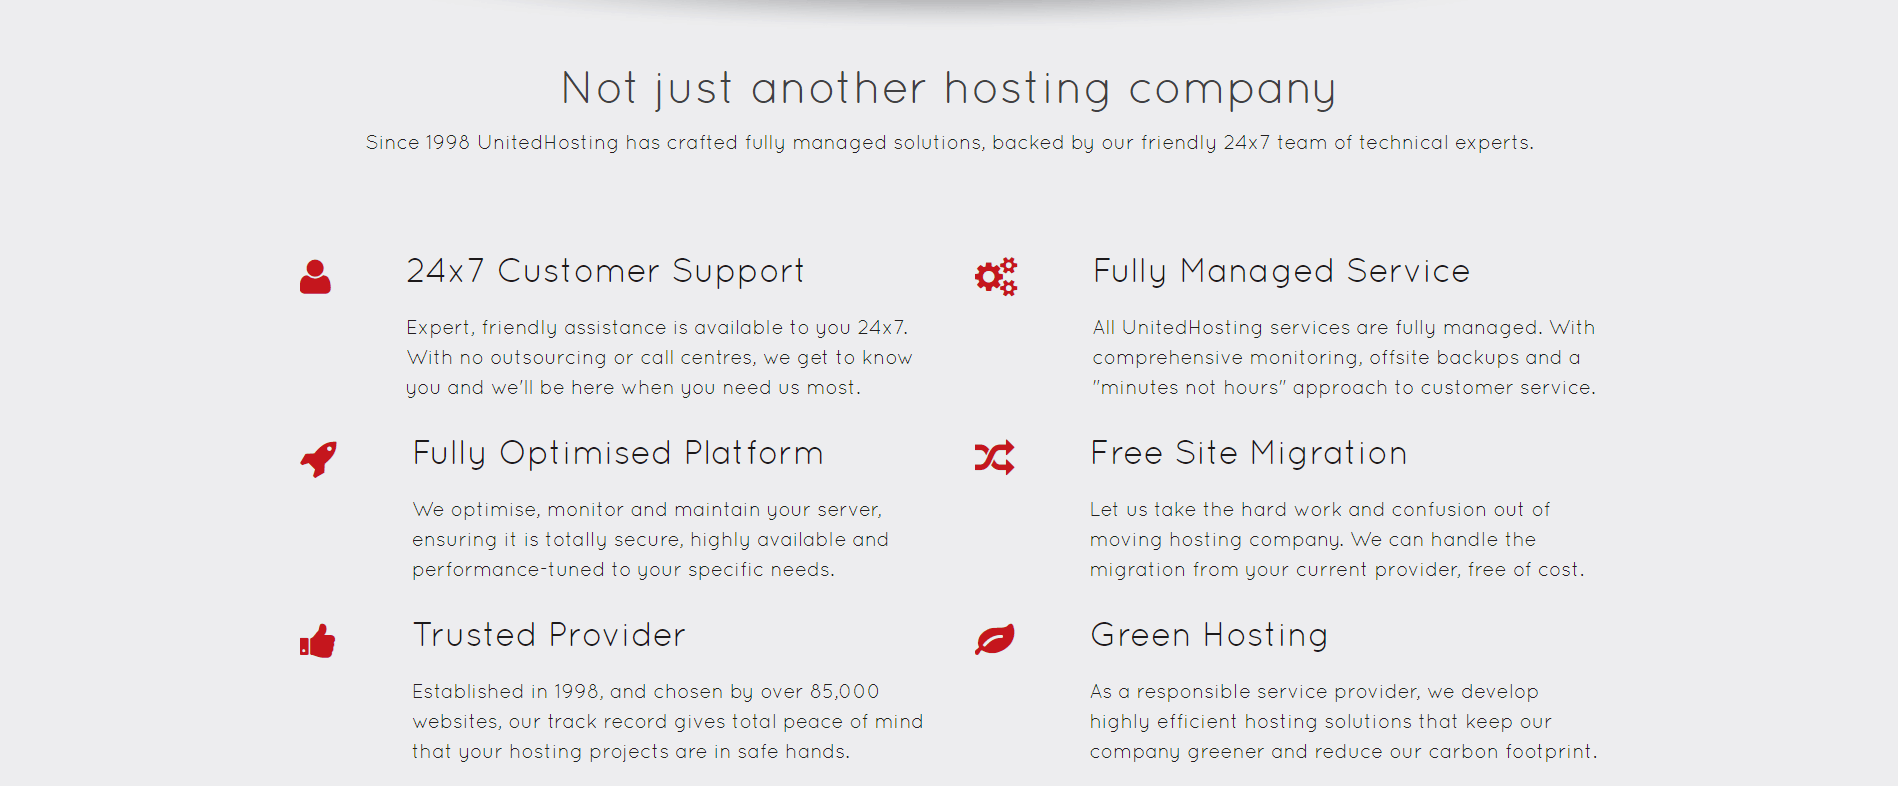 UnitedHosting-features